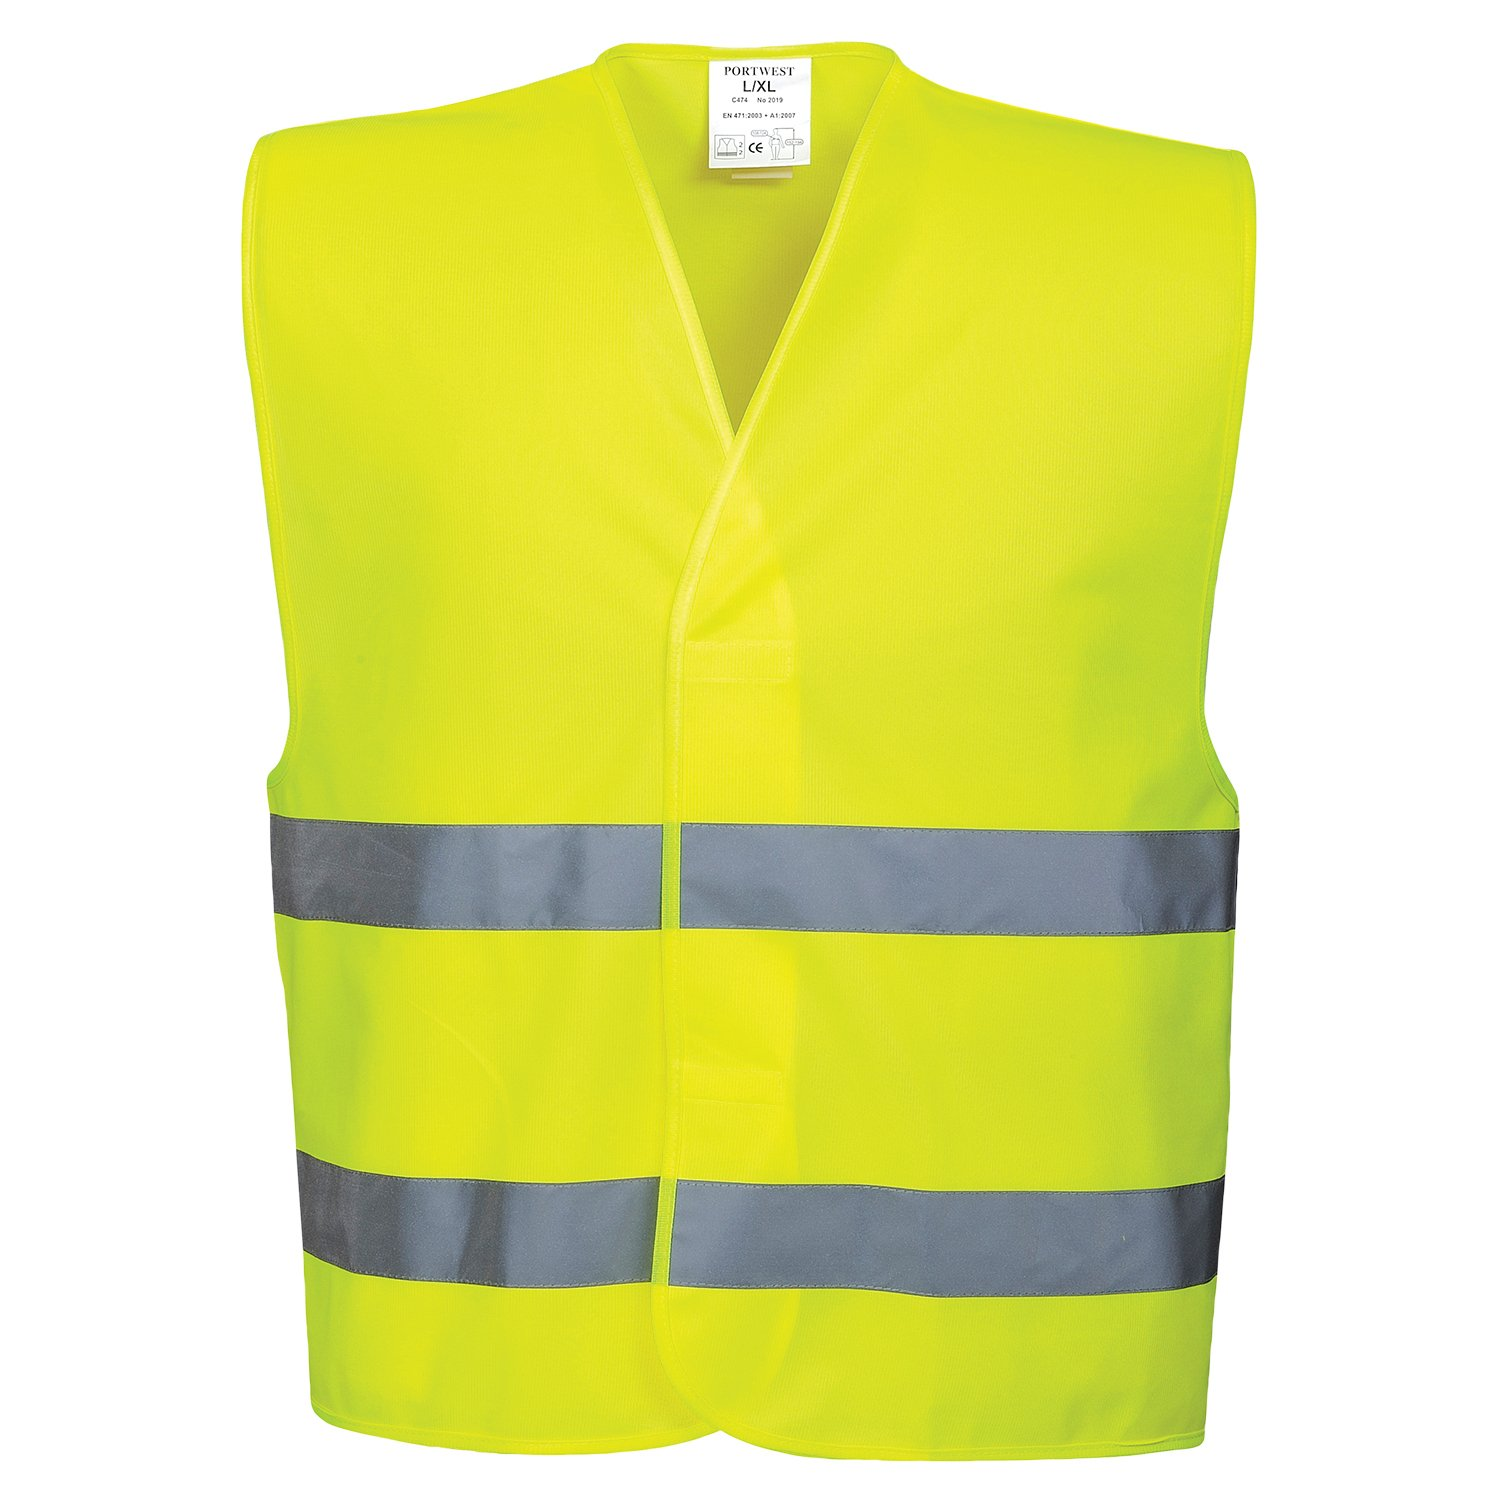 Portwest Workwear Mens Hi-VIS 2 Band Vest